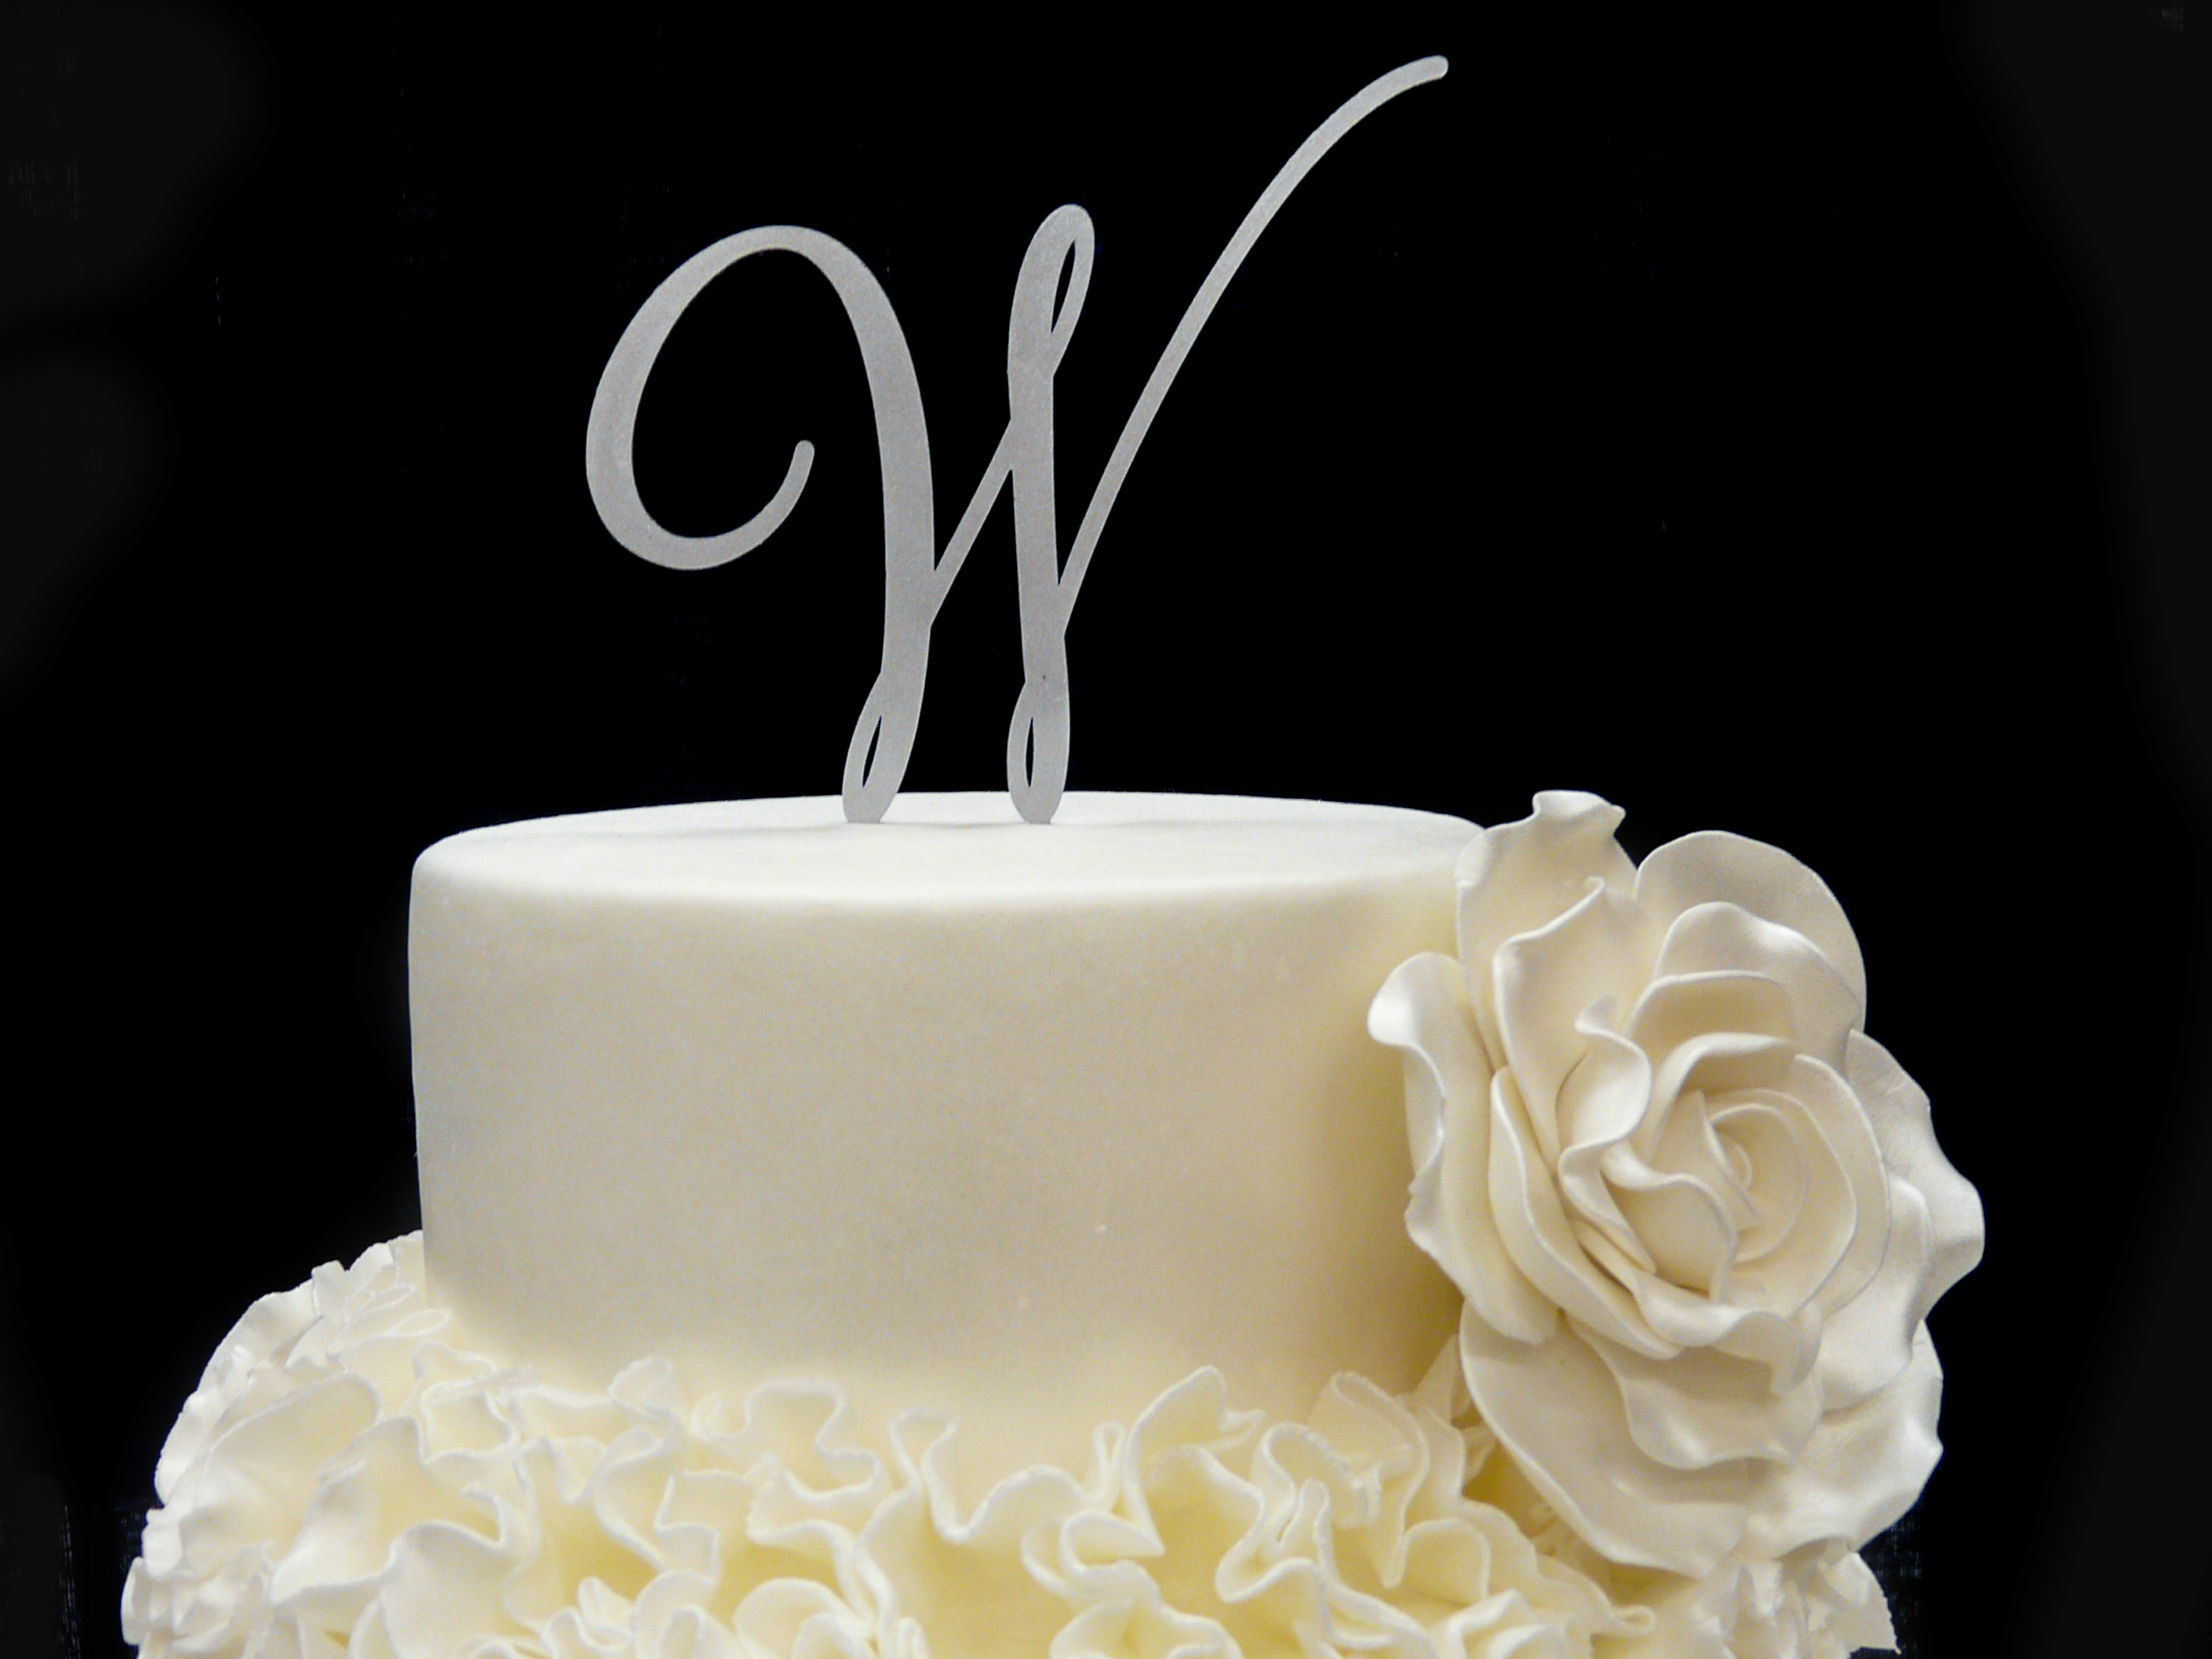 Cake Toppers & Accessories